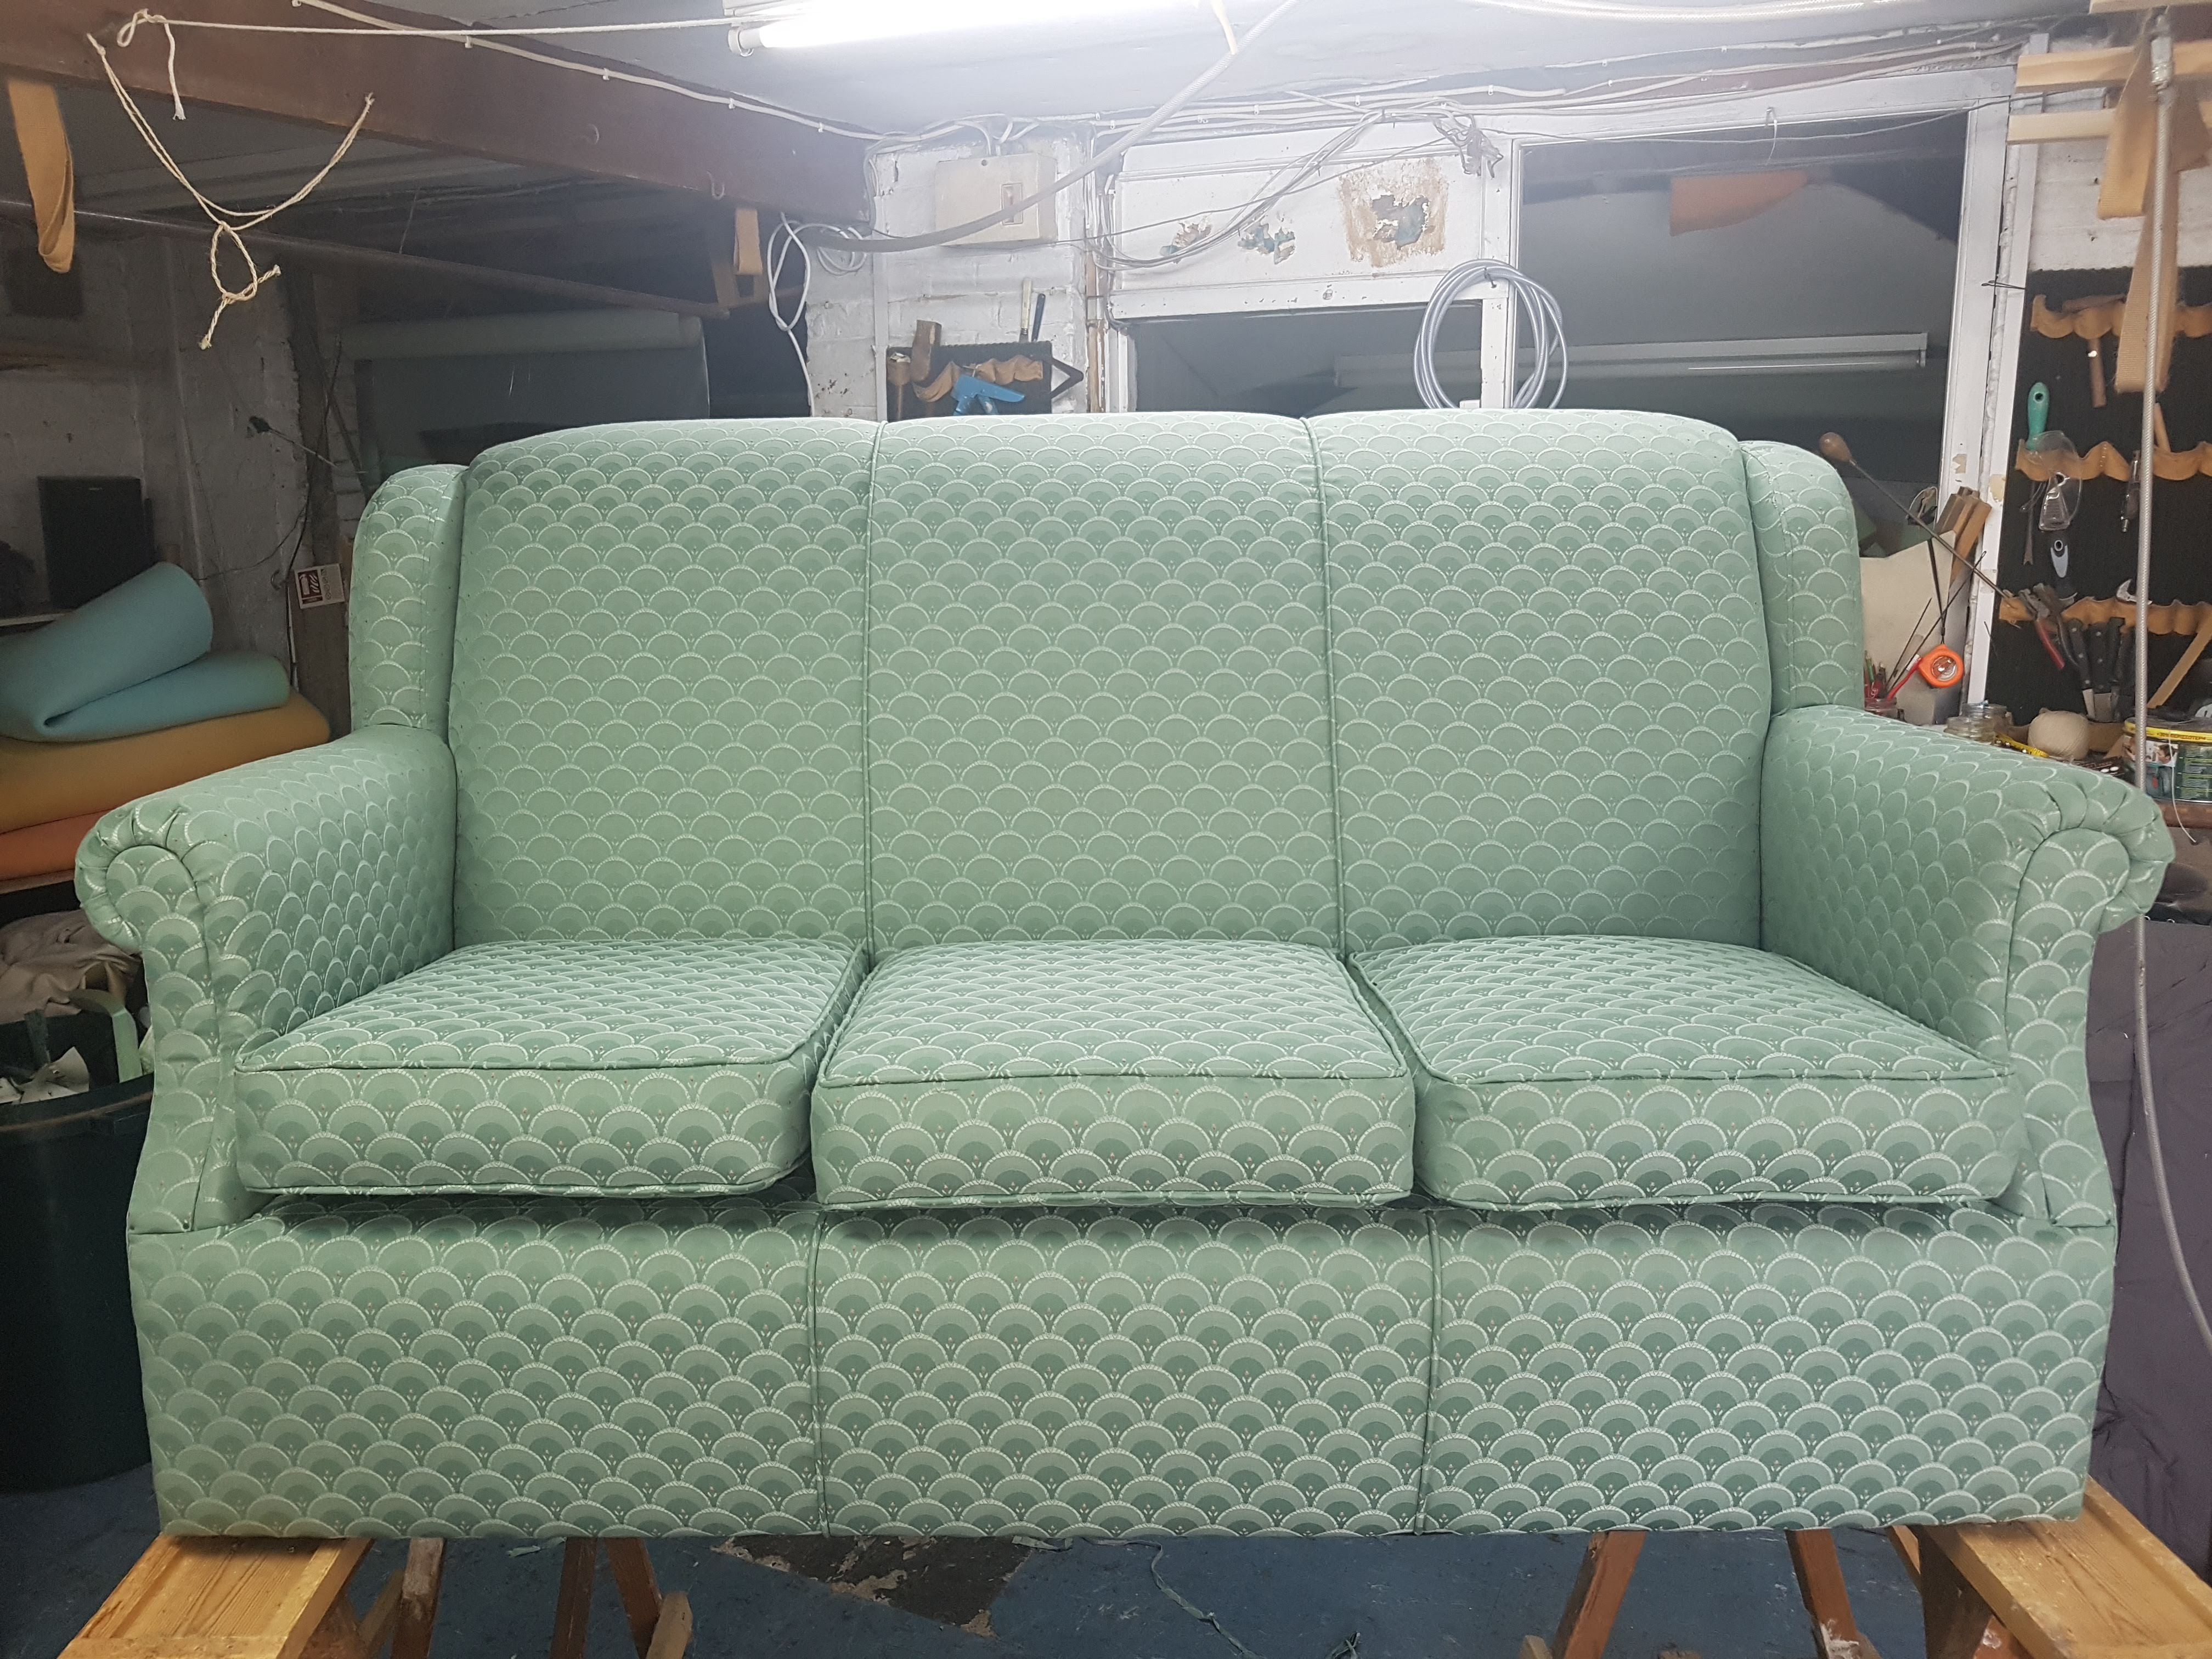 Sofa Upholstery West Sussex Furniture Upholstery Services In Burgess Hill Turners Hill